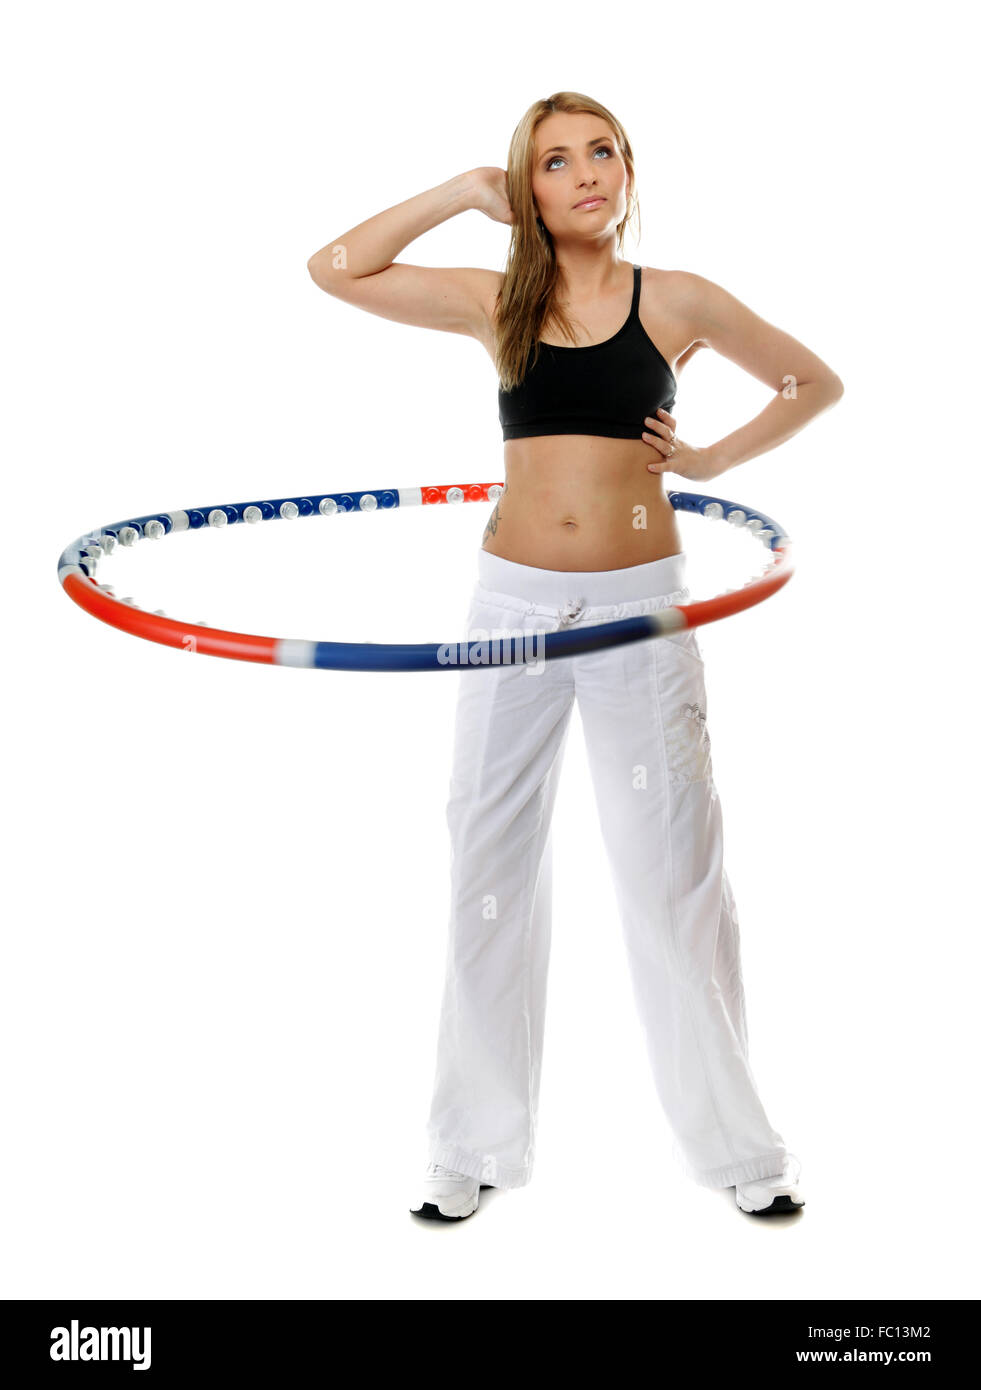 young fitness woman with hula hoop isolated - Stock Image